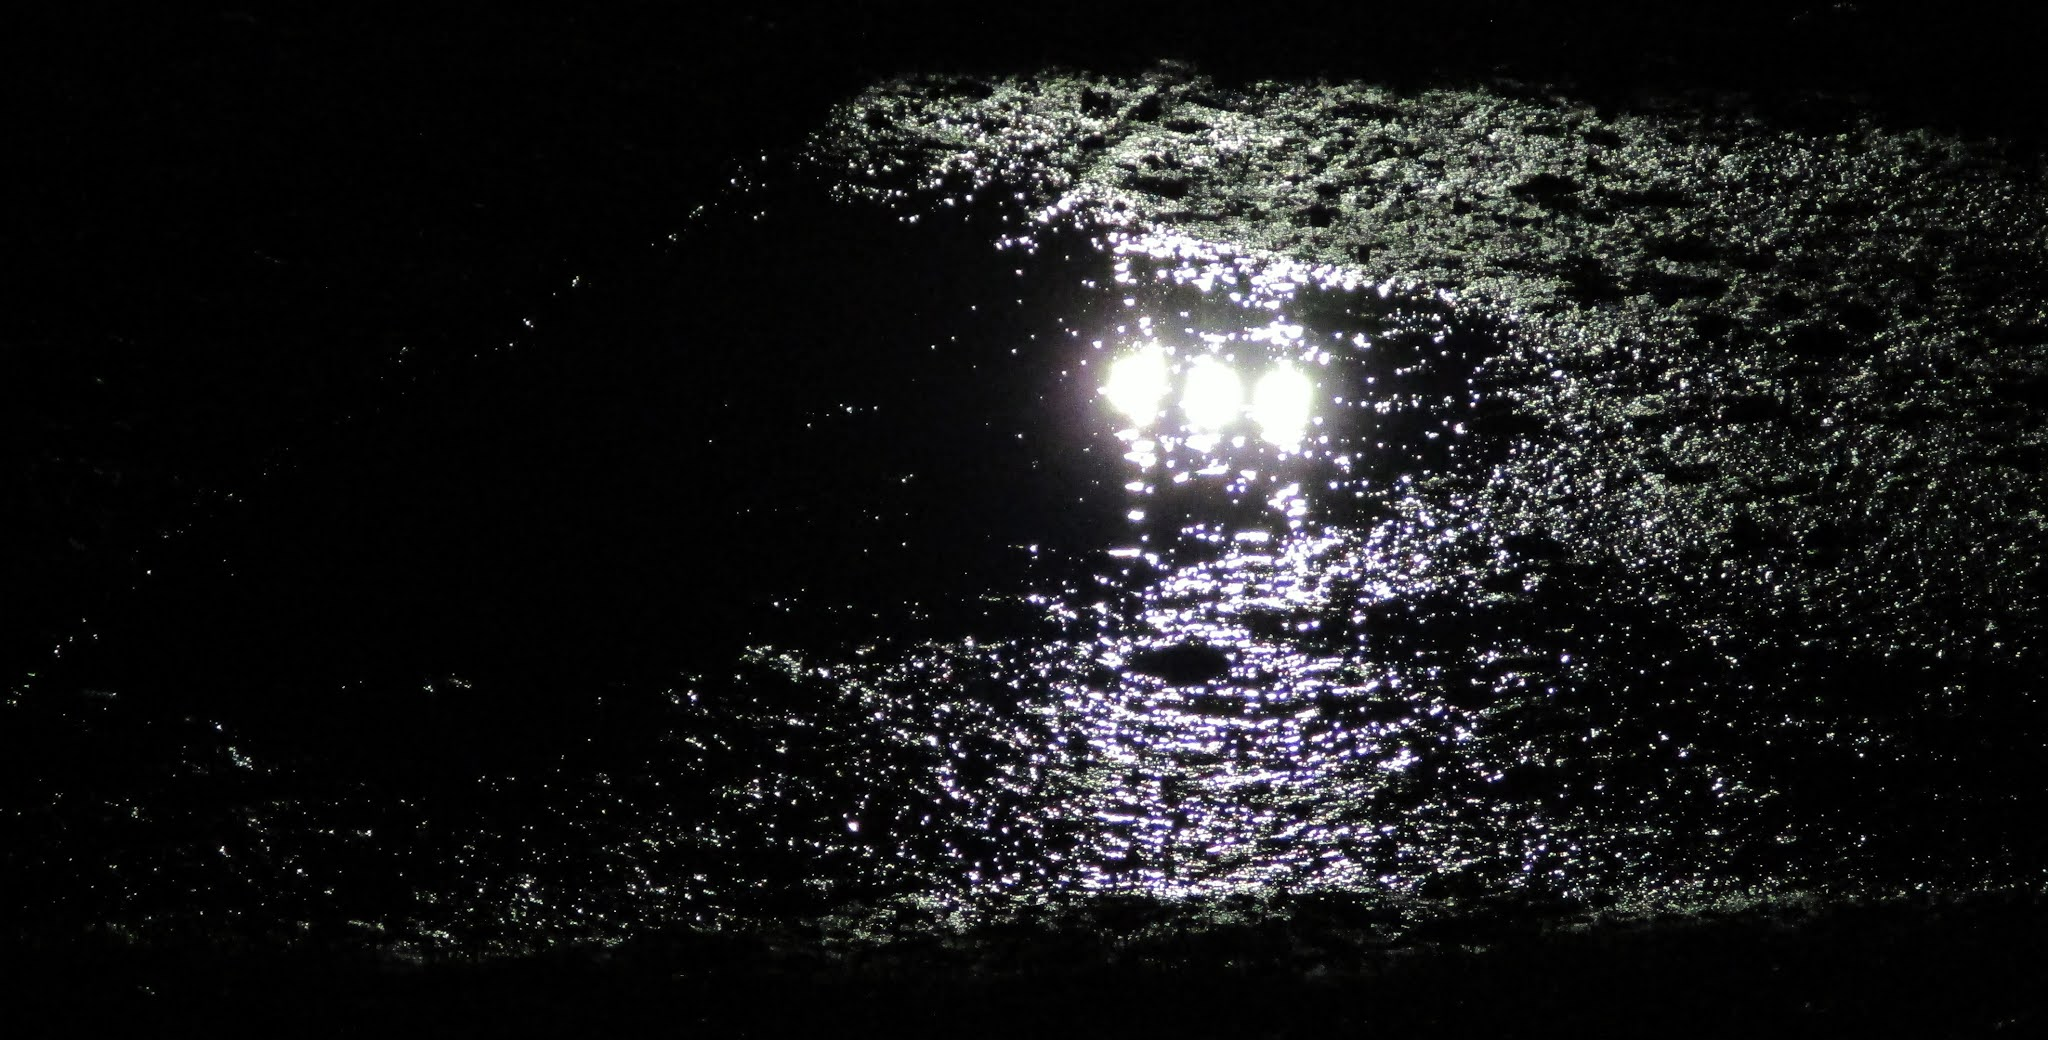 Floodlight reflection in a puddle at The Rivermoor Stadium